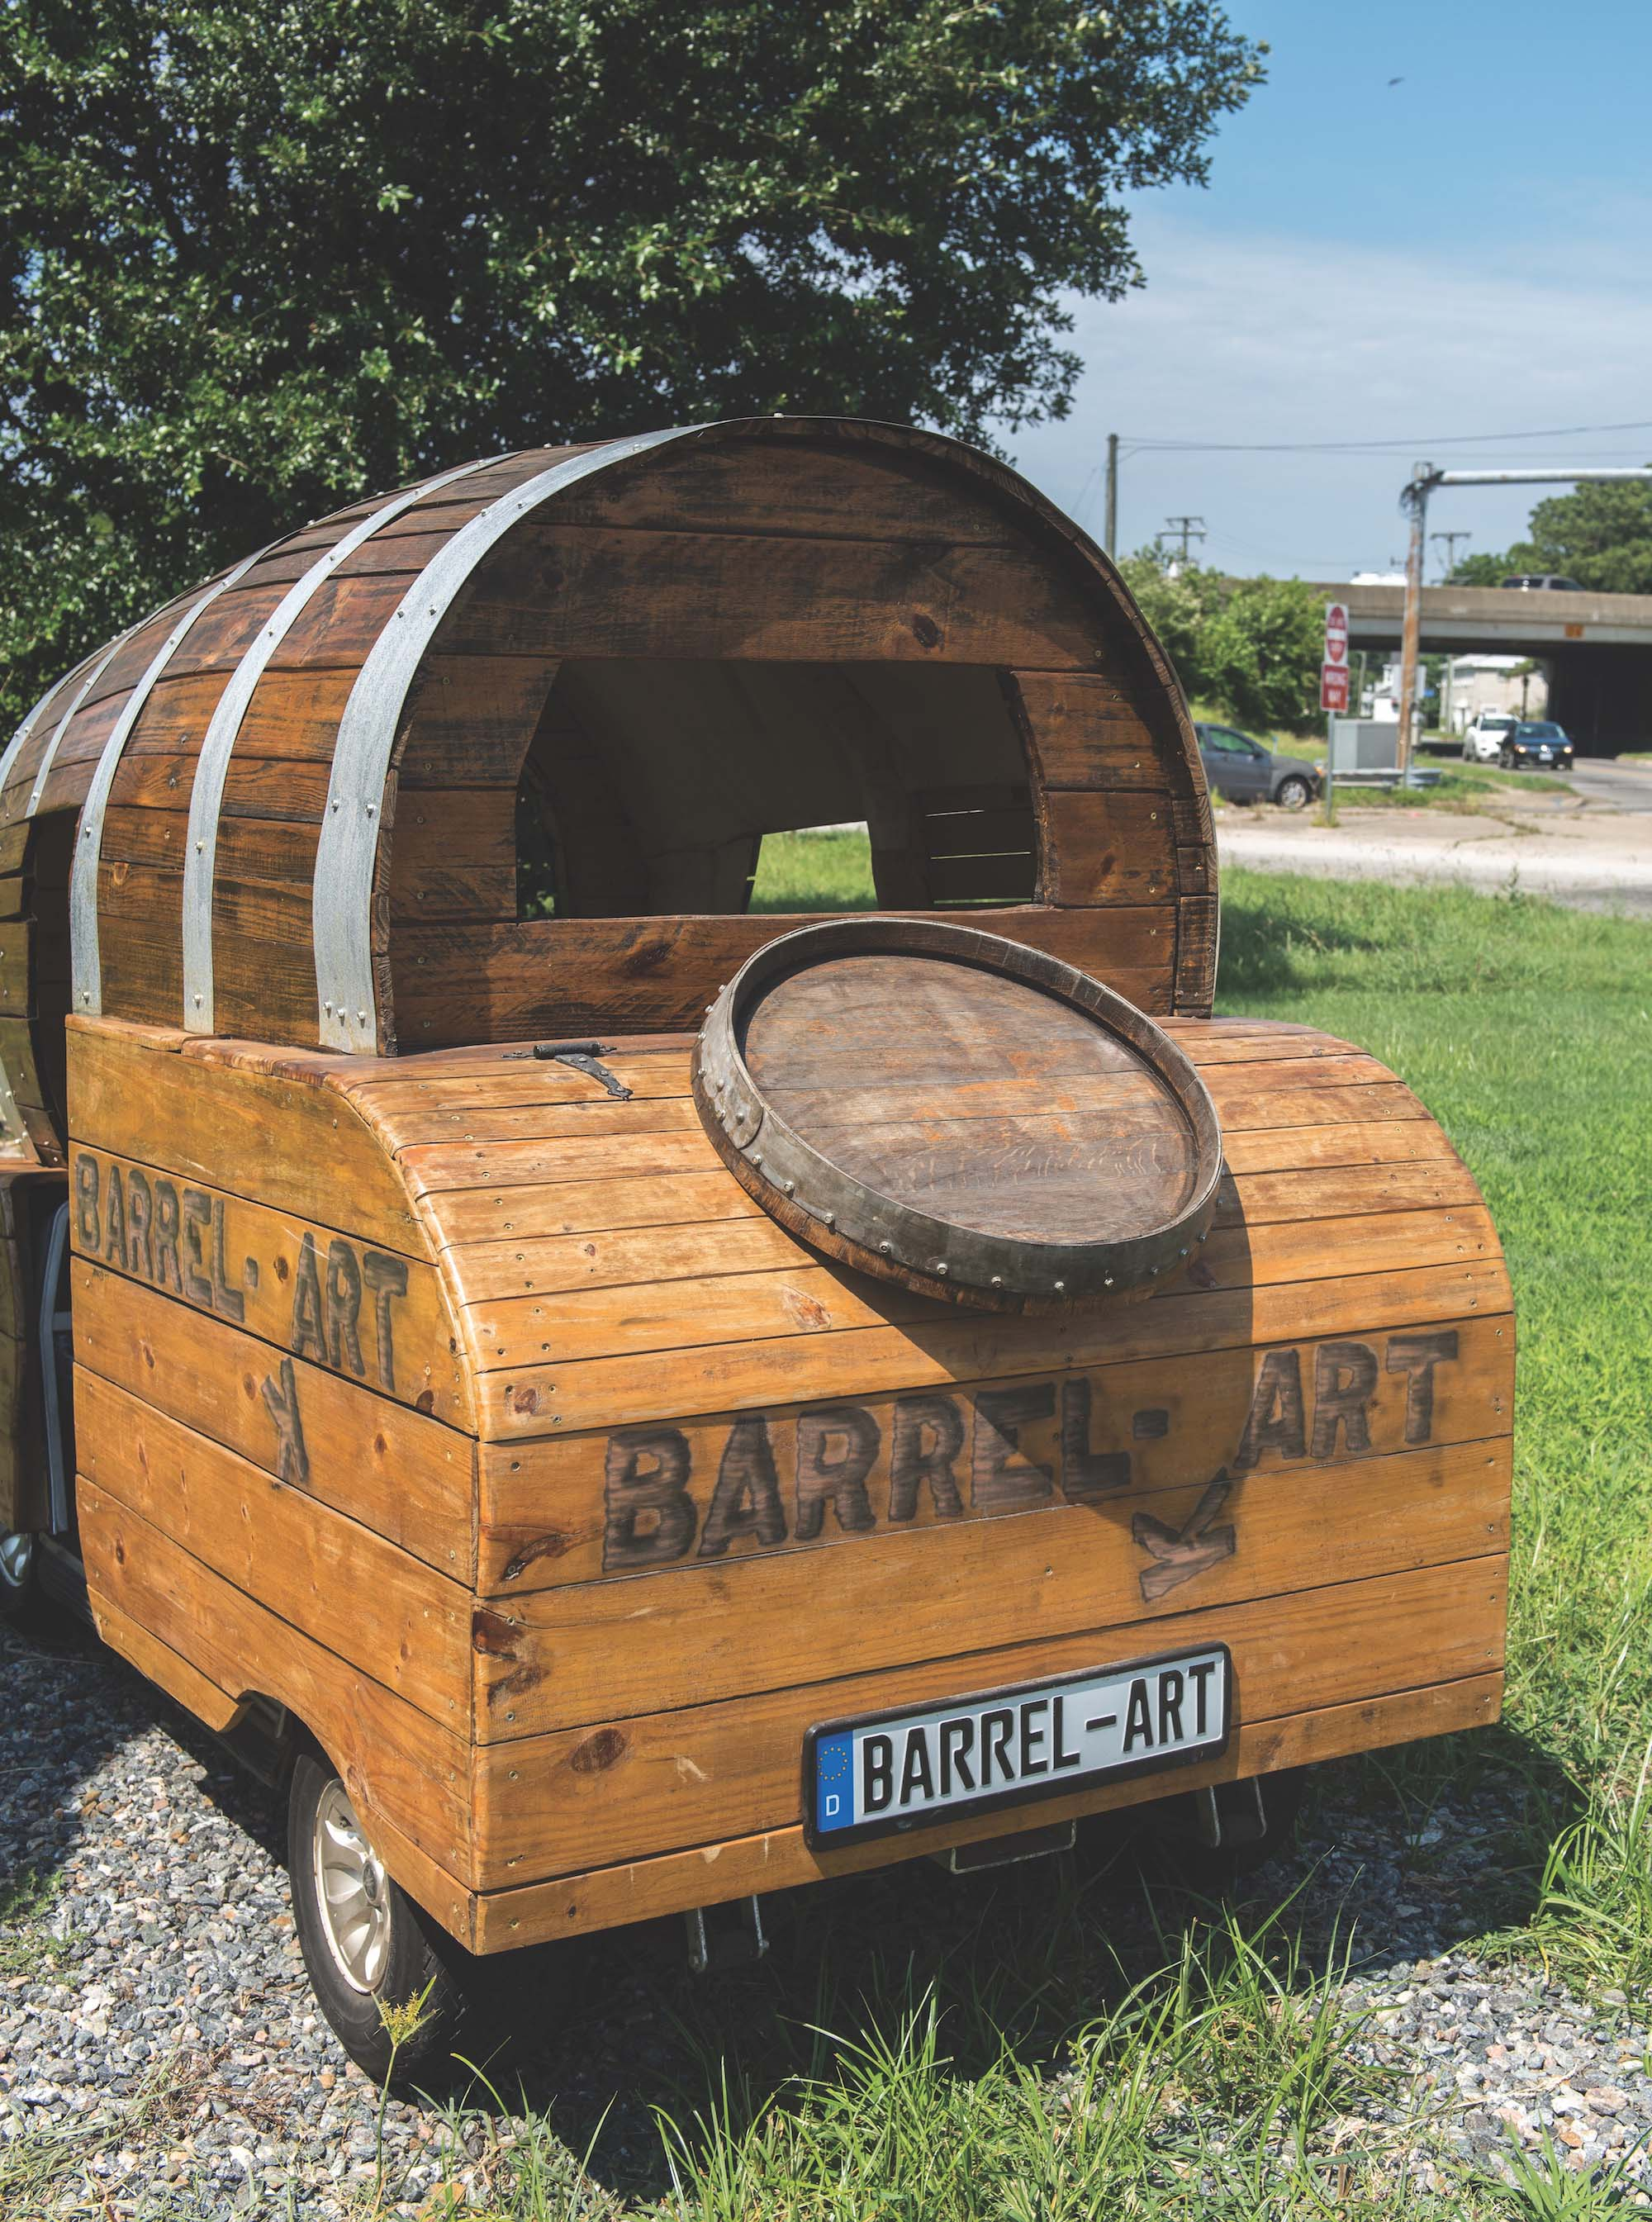 Barrel-Kart, Barrel-Art, Hampton